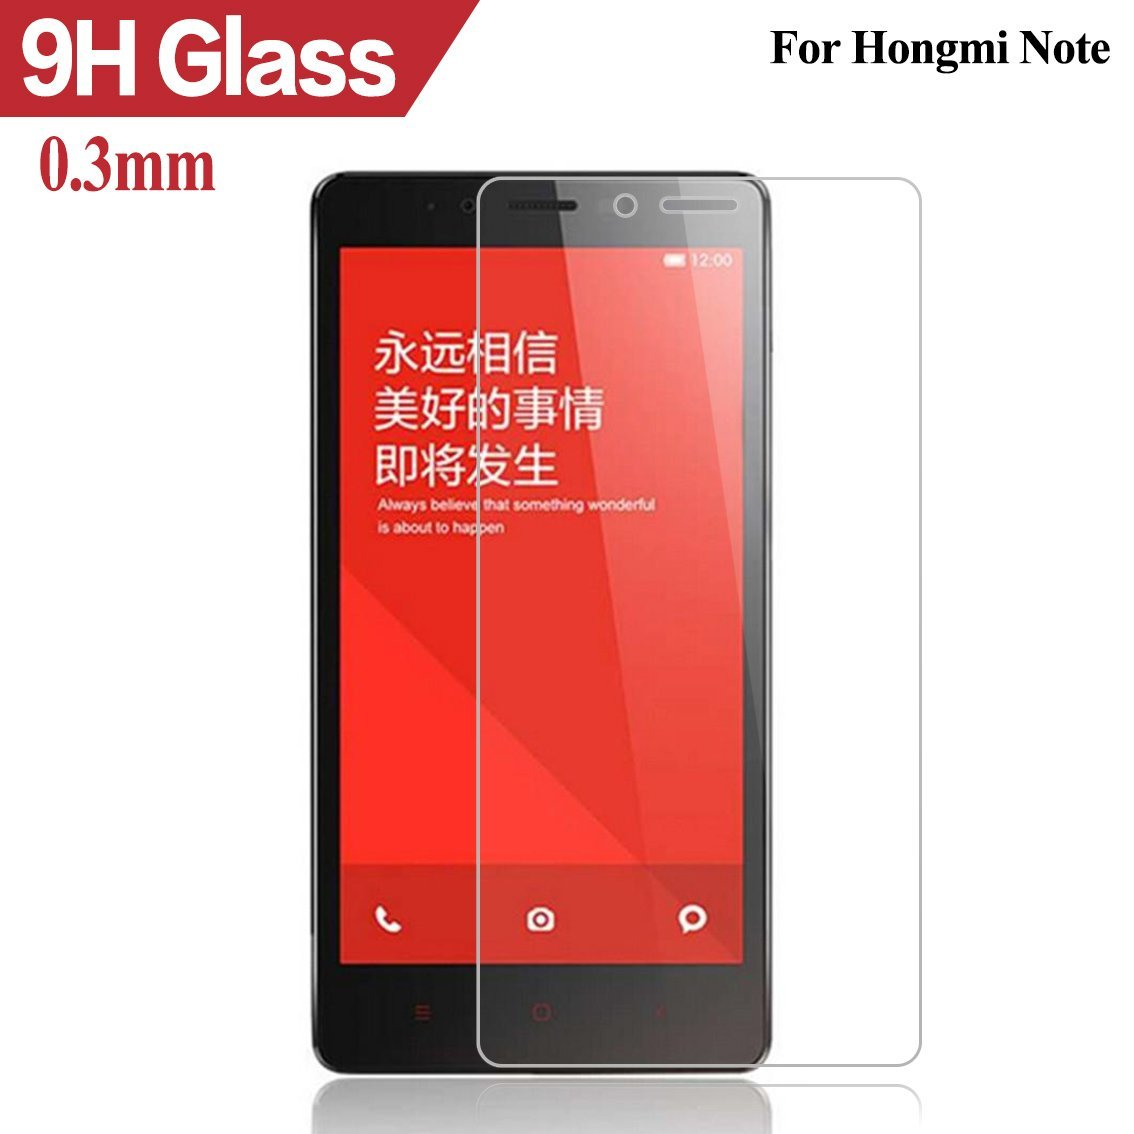 Premium Tempered Glass Film Protector 0.3mm Case For Xiaomi Mi2 M2 Mi3 M3 Mi4 Mi5 4C Redmi Hongmi 1S 2 3/ Note / note2 / note3